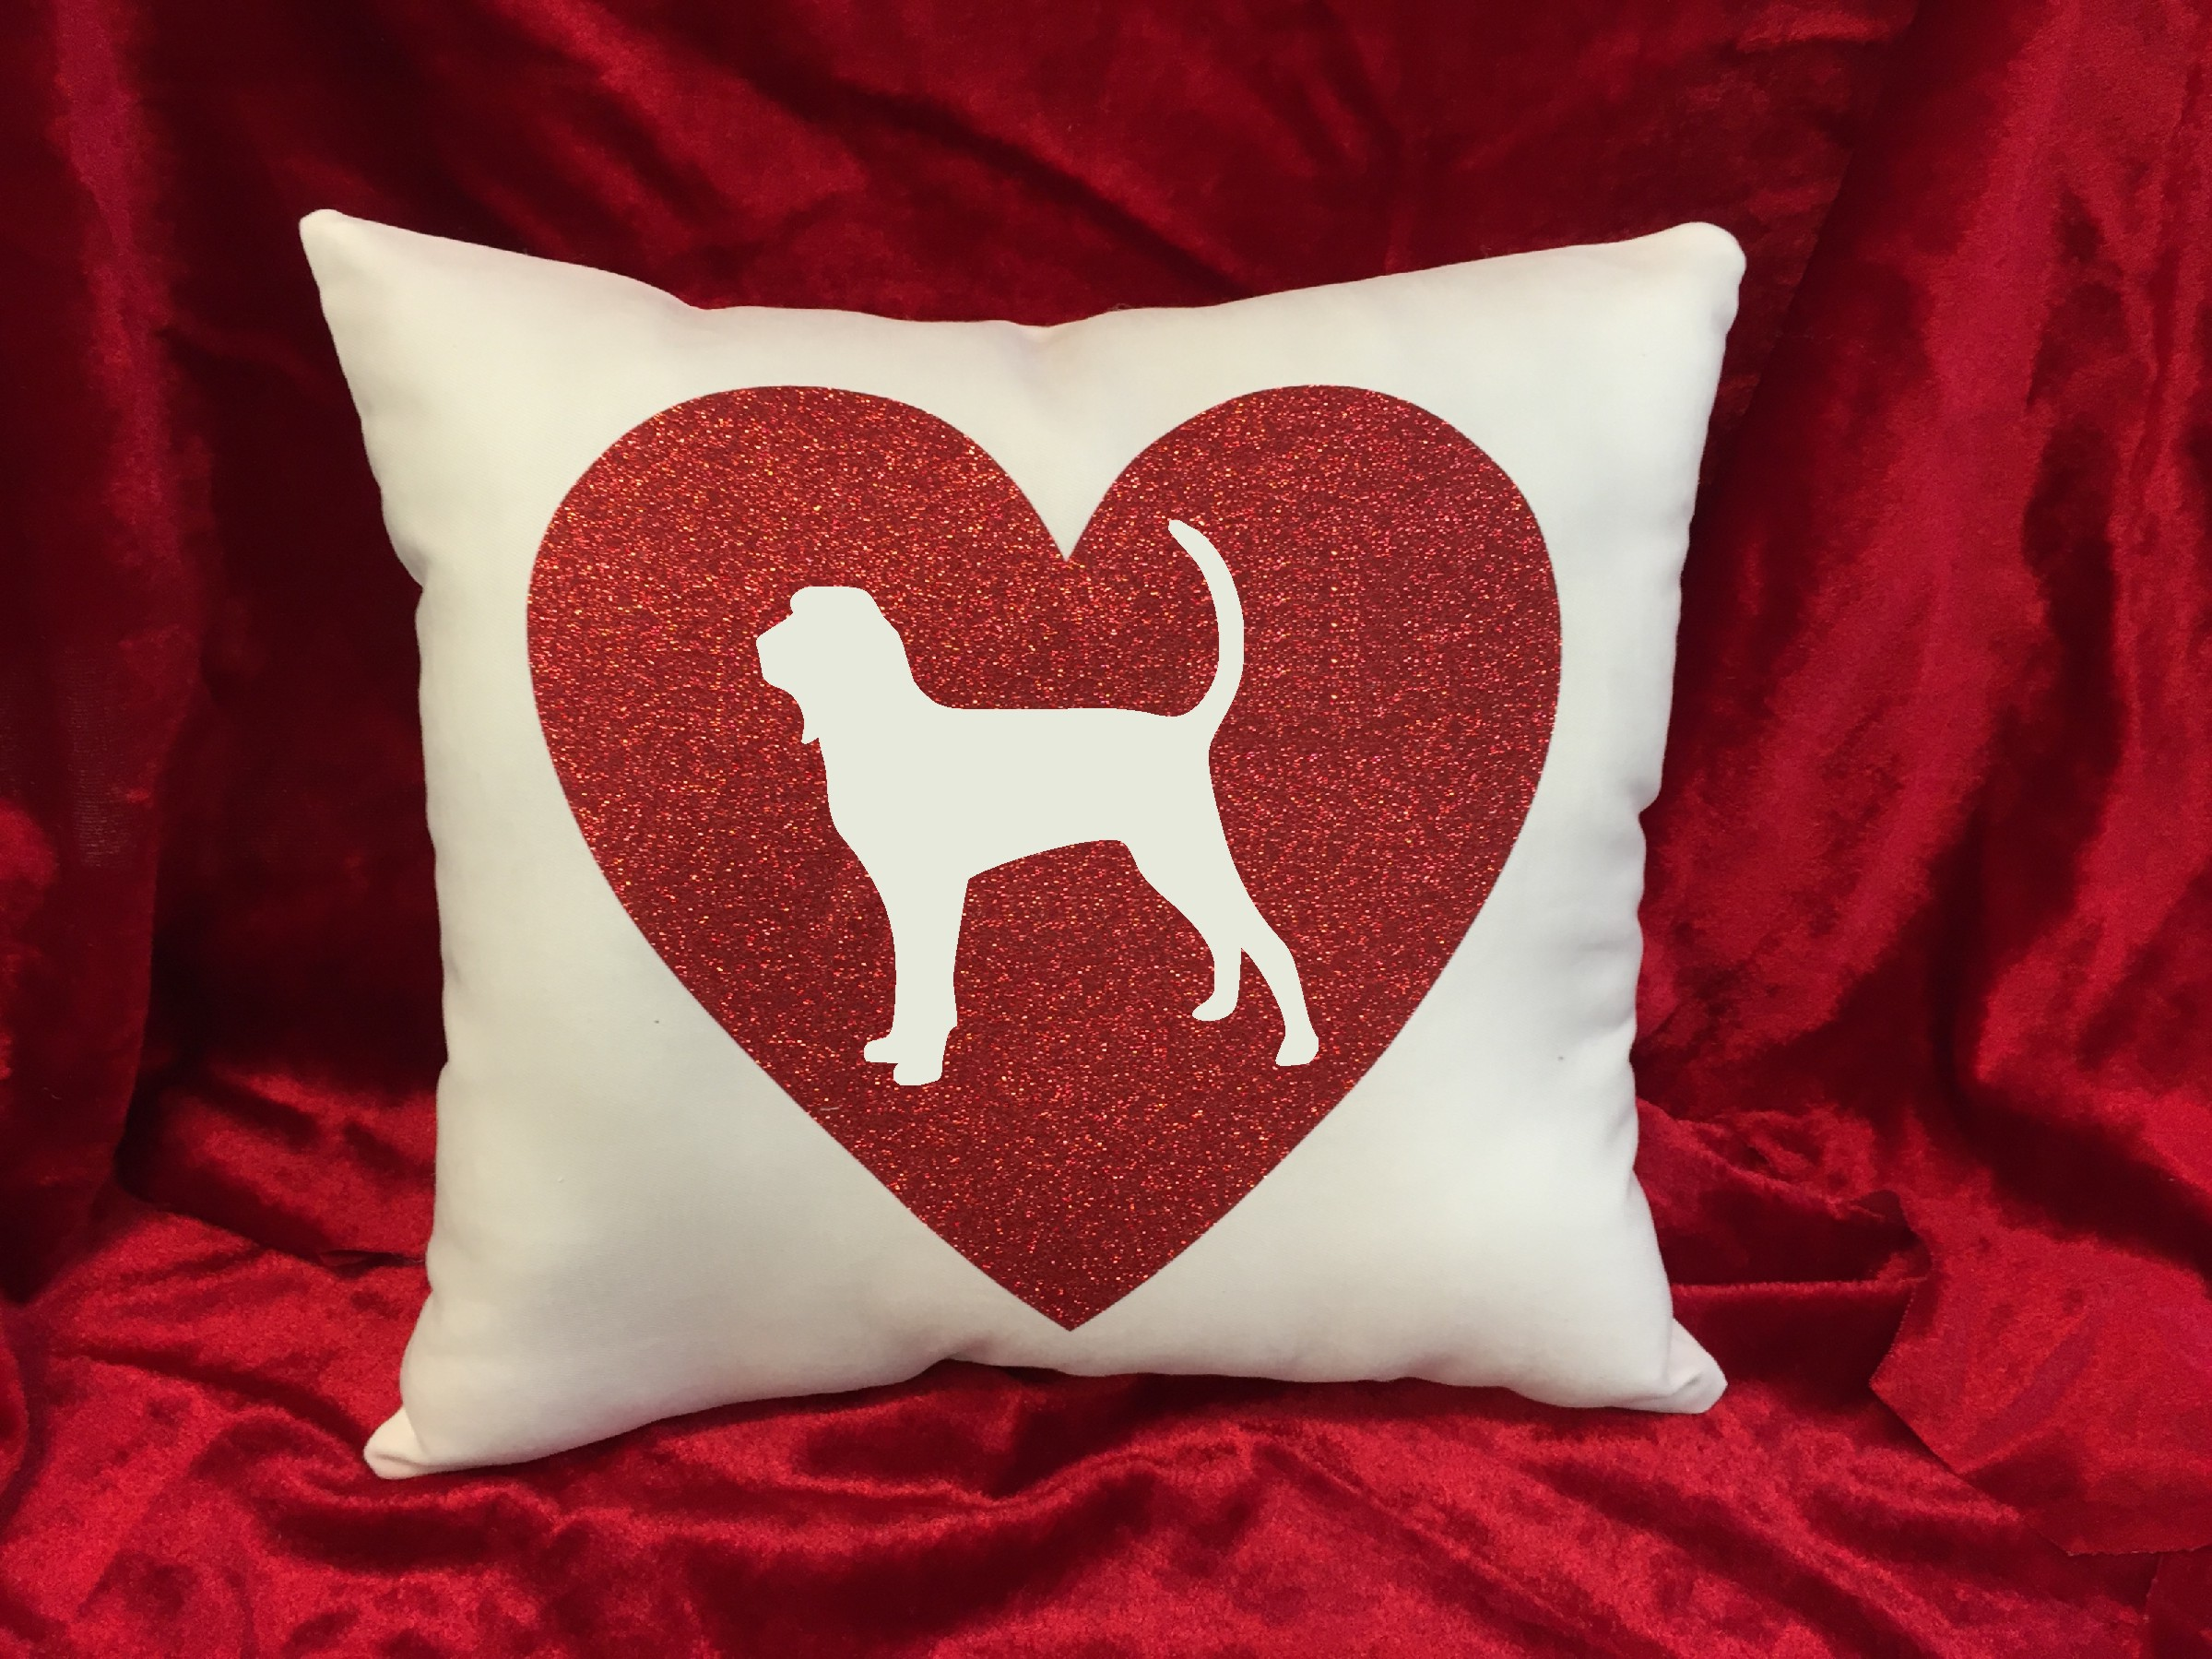 Dogs - Throw Pillow - Black and Tan Coonhound